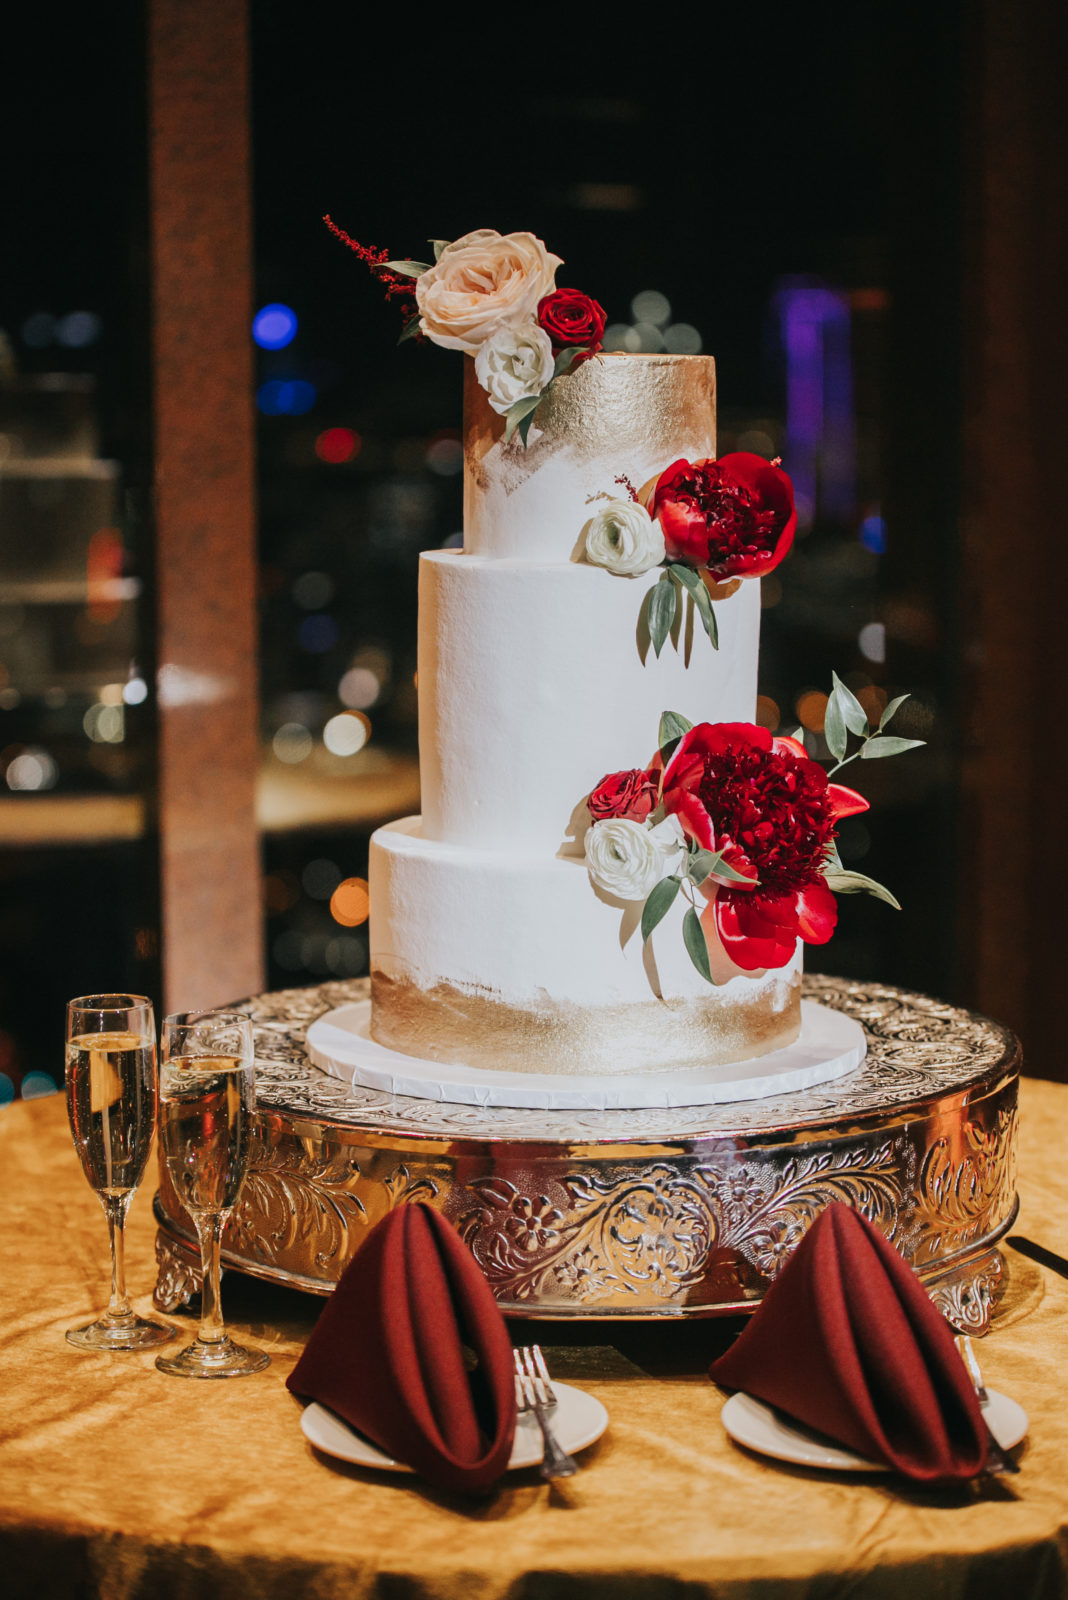 White and Red Floral Wedding Cake: Exquisite City Place Events Wedding featured on Alexa Kay Events